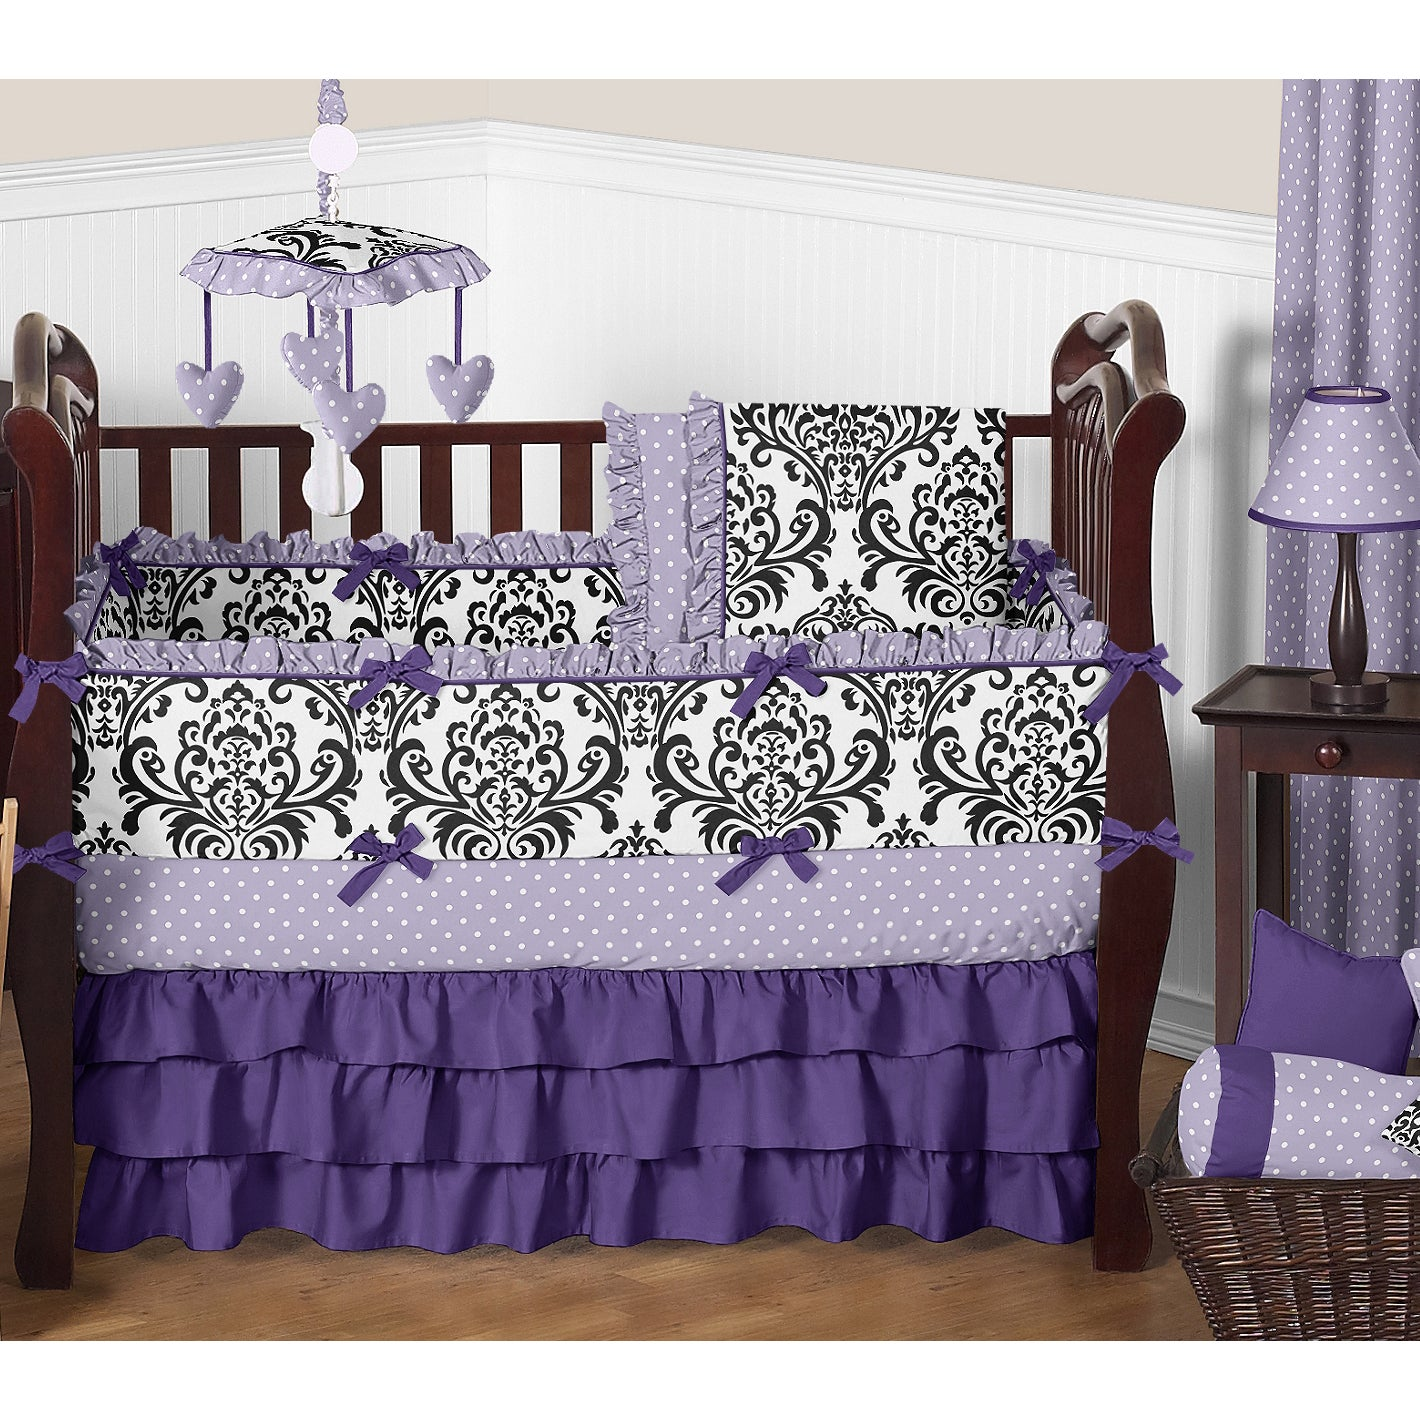 Sweet Jojo Designs 9 Piece Crib Bedding Set For The Sloane Collection Overstock 12488971